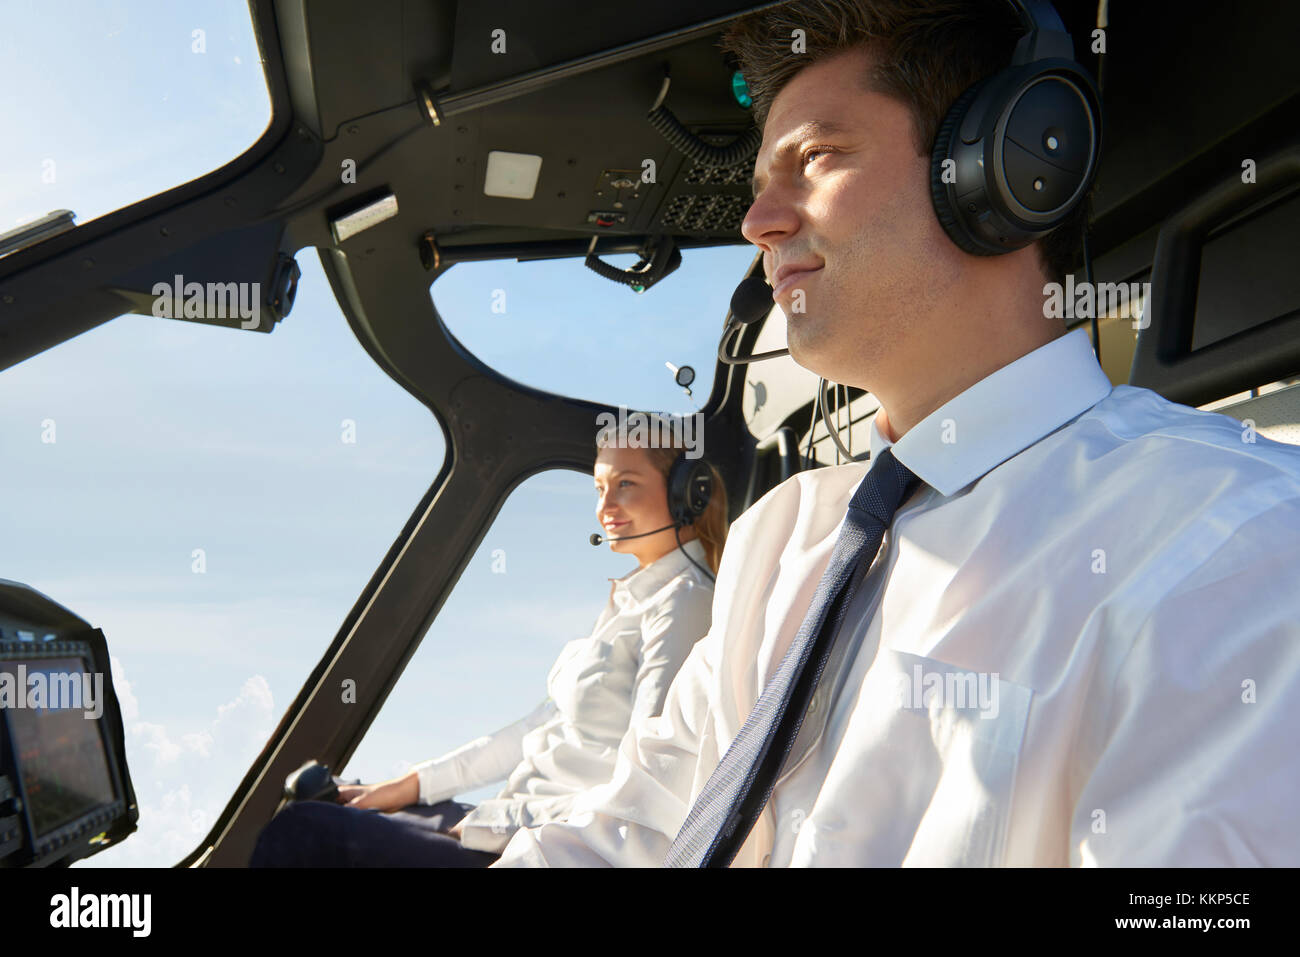 Pilot And Co Pilot In Cockpit Of Helicopter - Stock Image